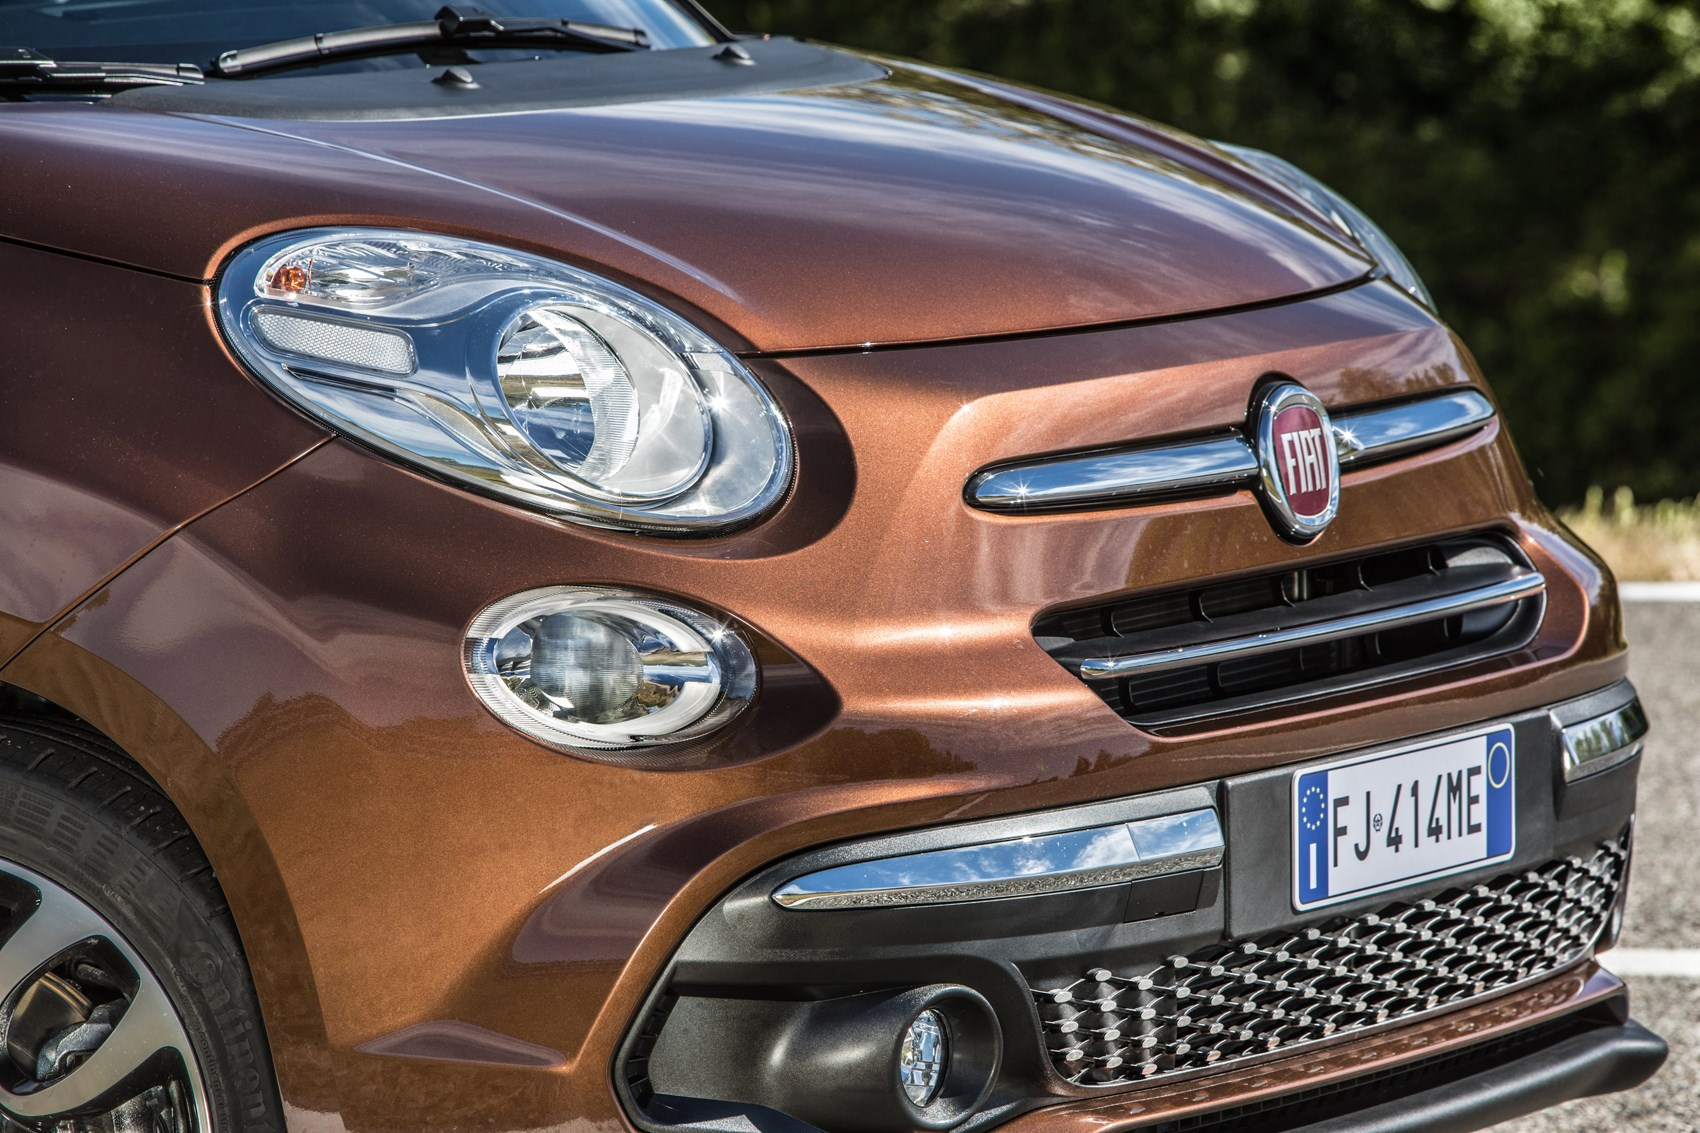 diesel fiat drove cross tested version more test hp the of imagegallery campero